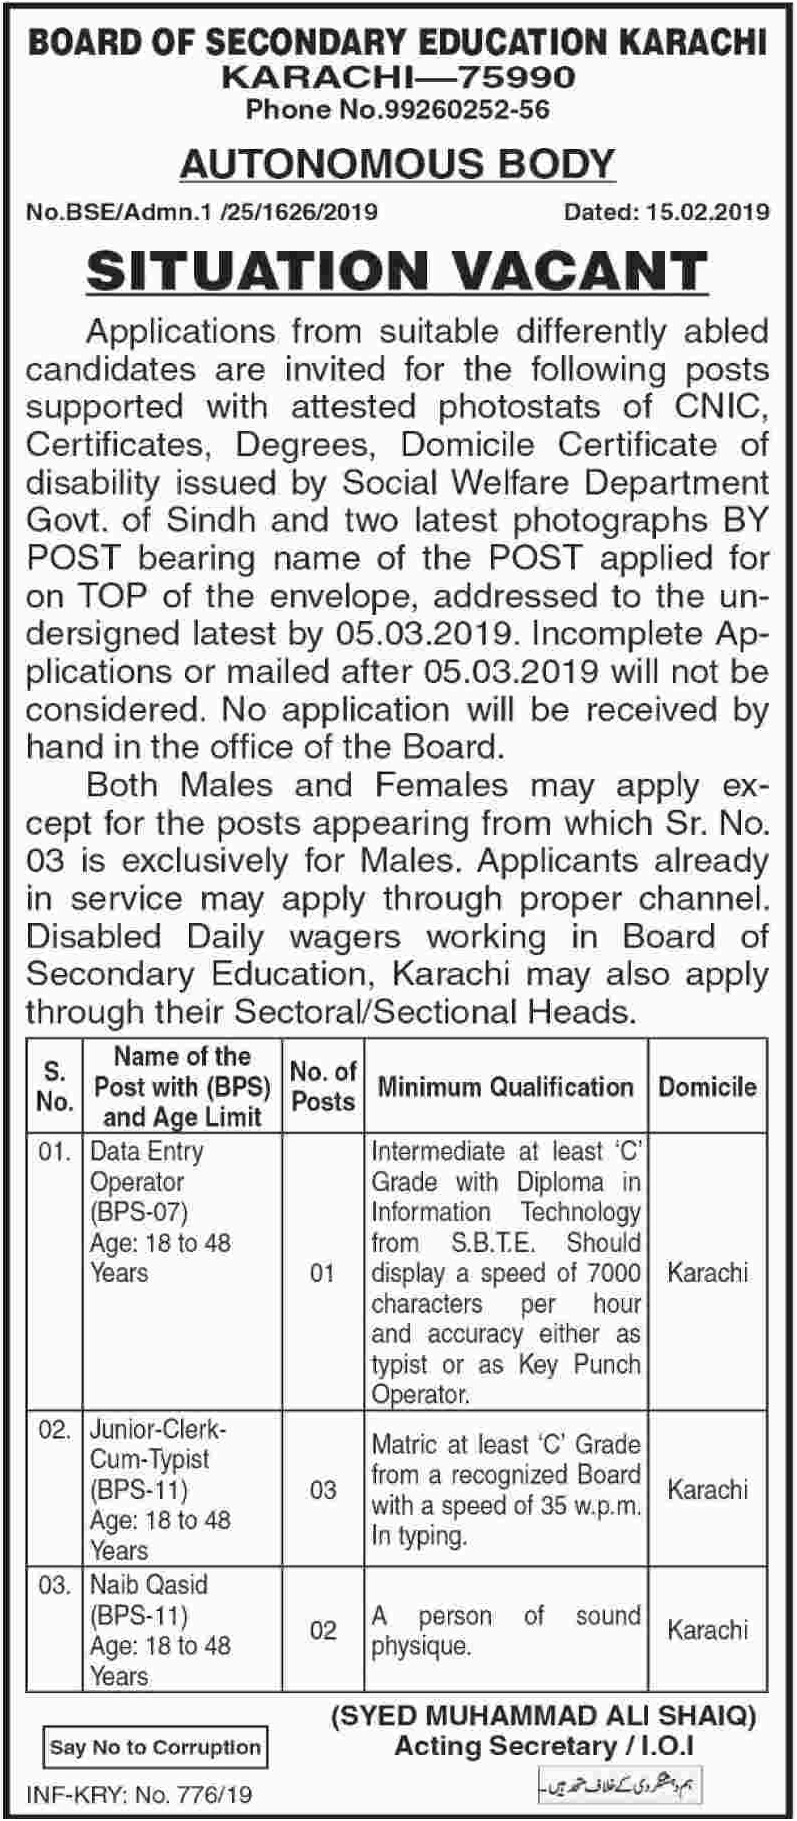 Board of Secondary Education Karachi Jobs 2019 Sindh